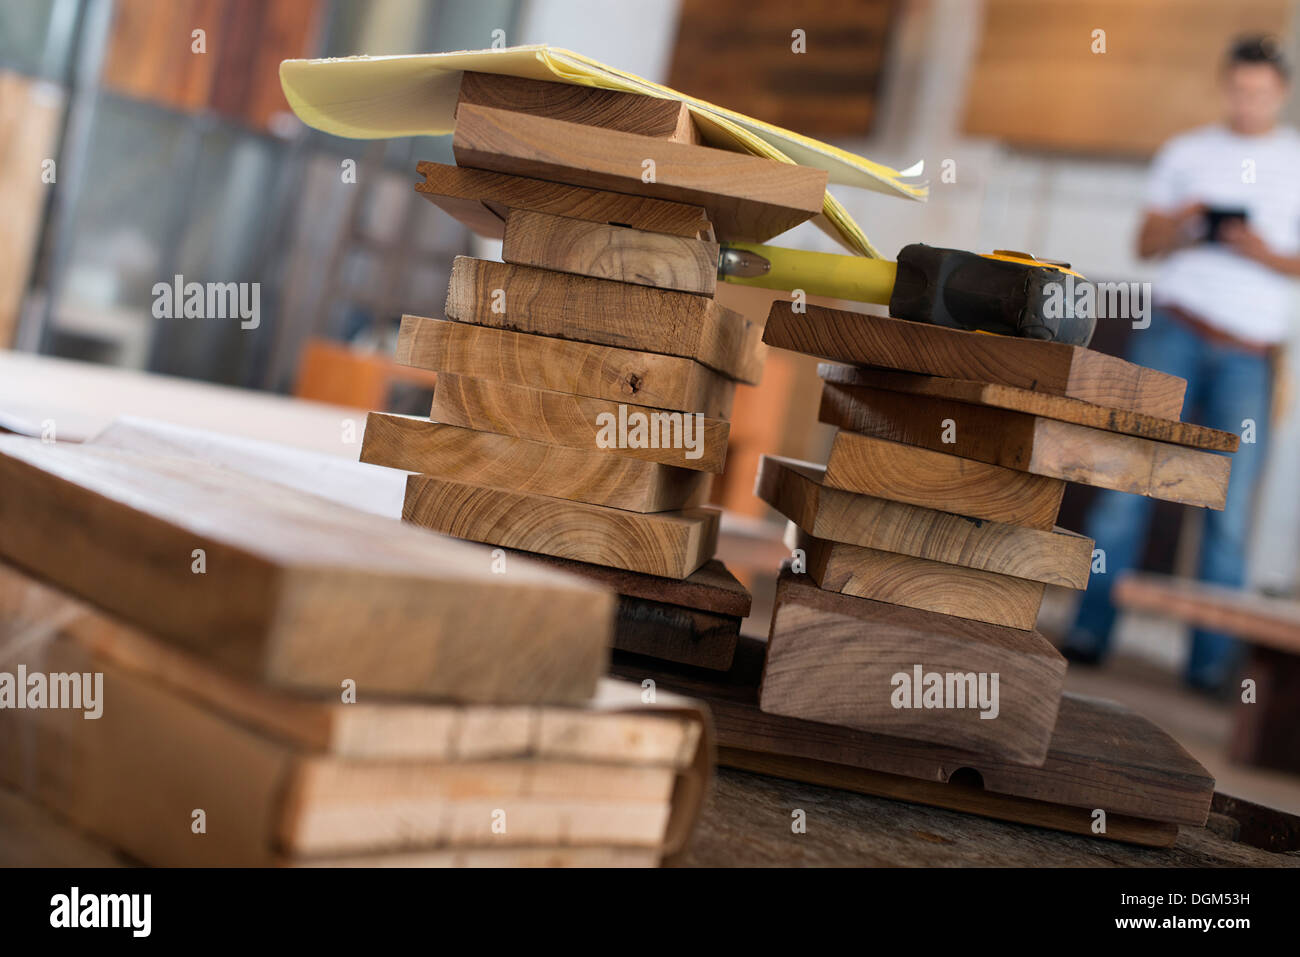 A young man in a workshop. Using a digital tablet to keep records and photograph objects. - Stock Image